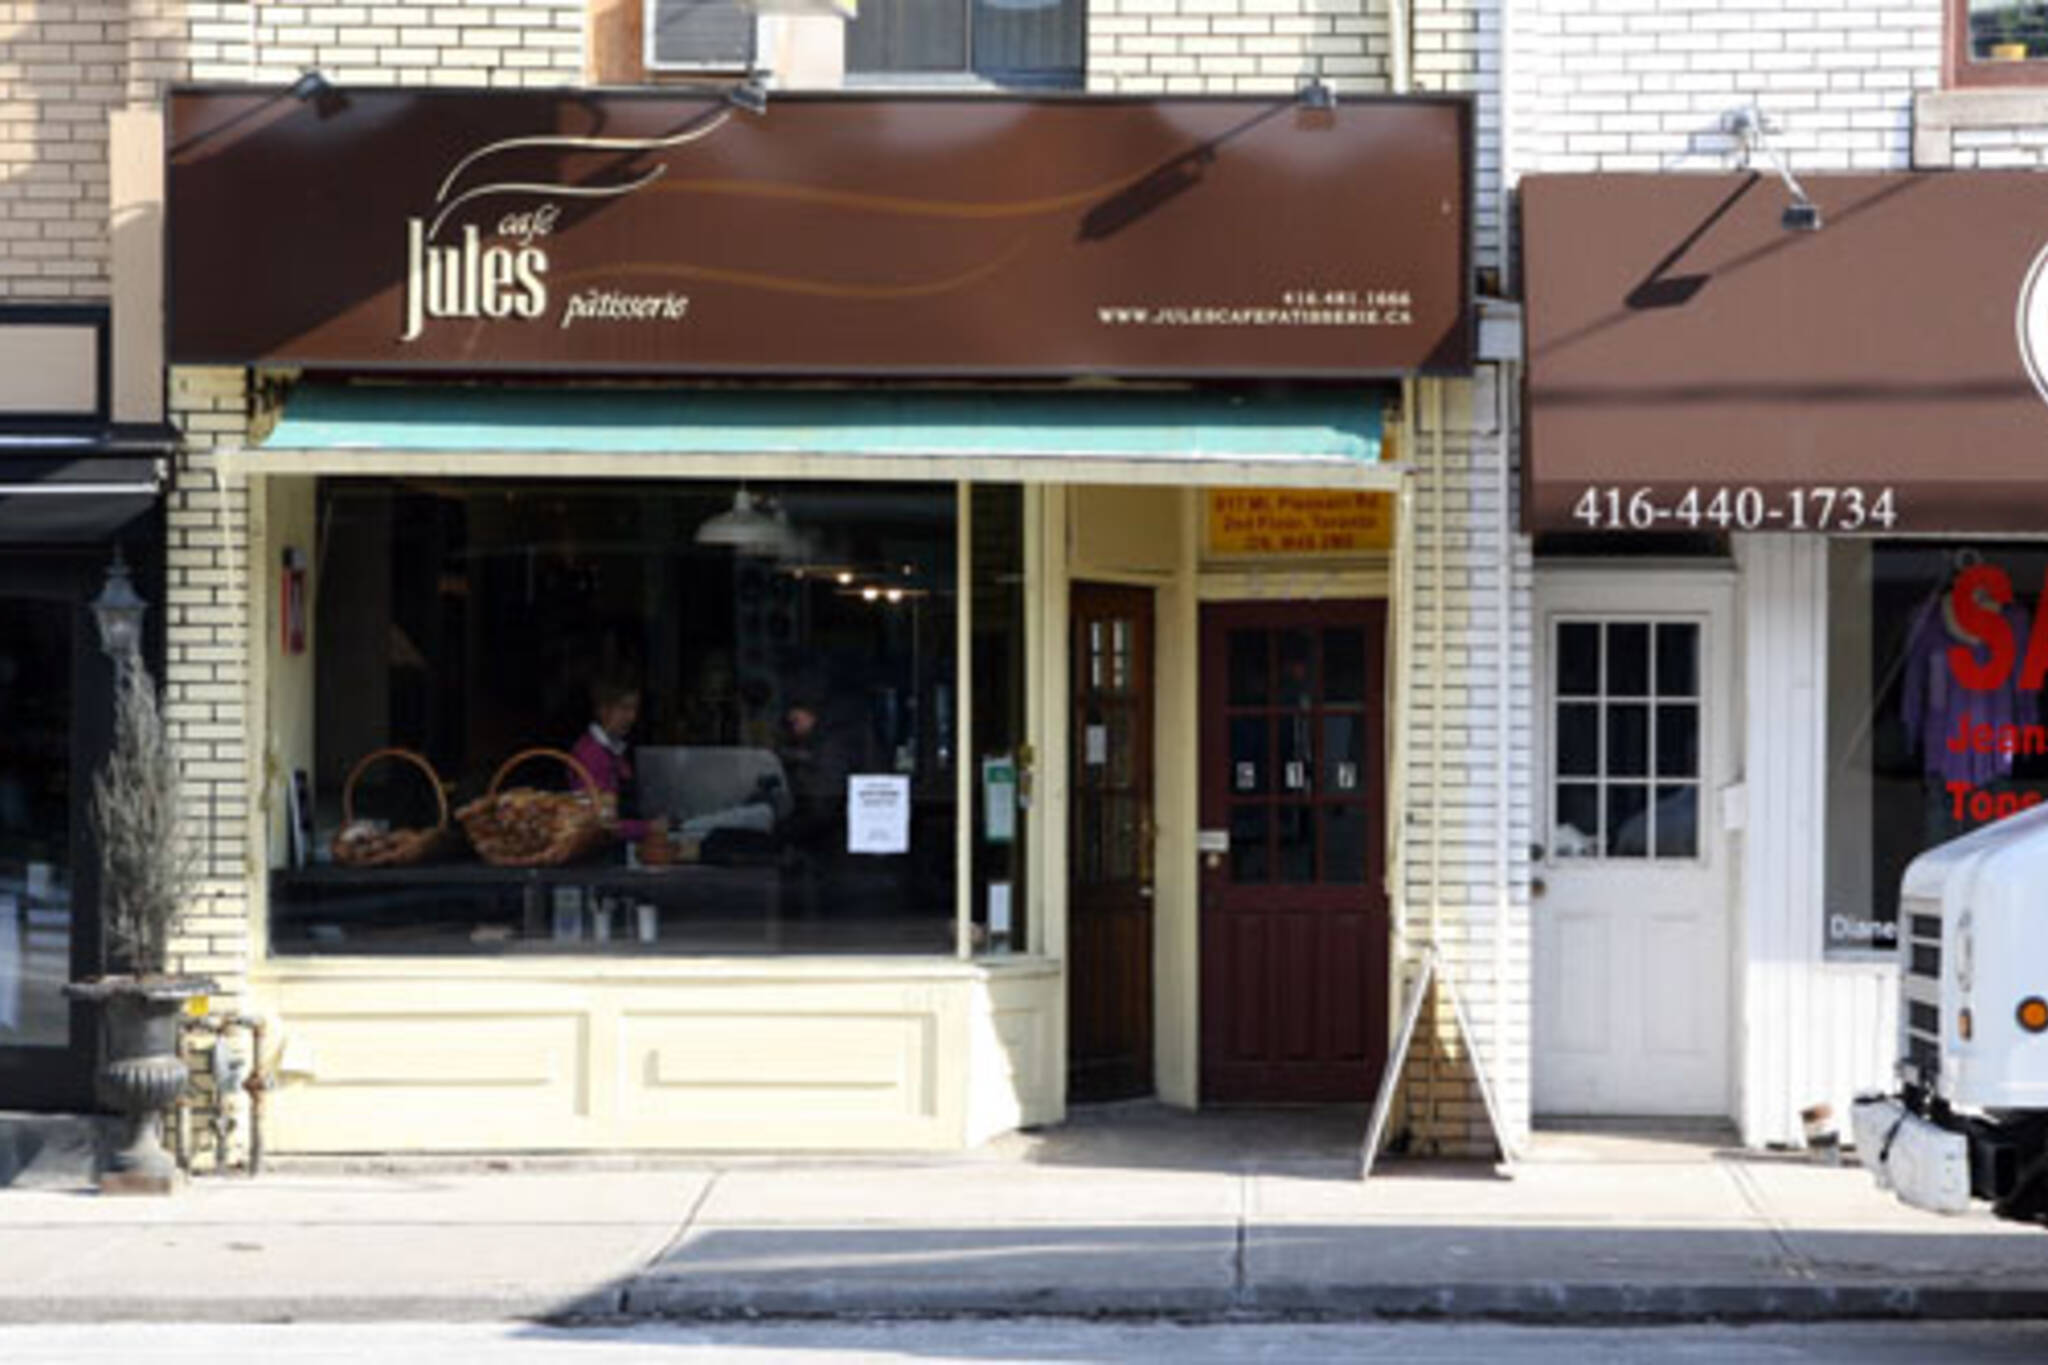 Jules Cafe Patisserie